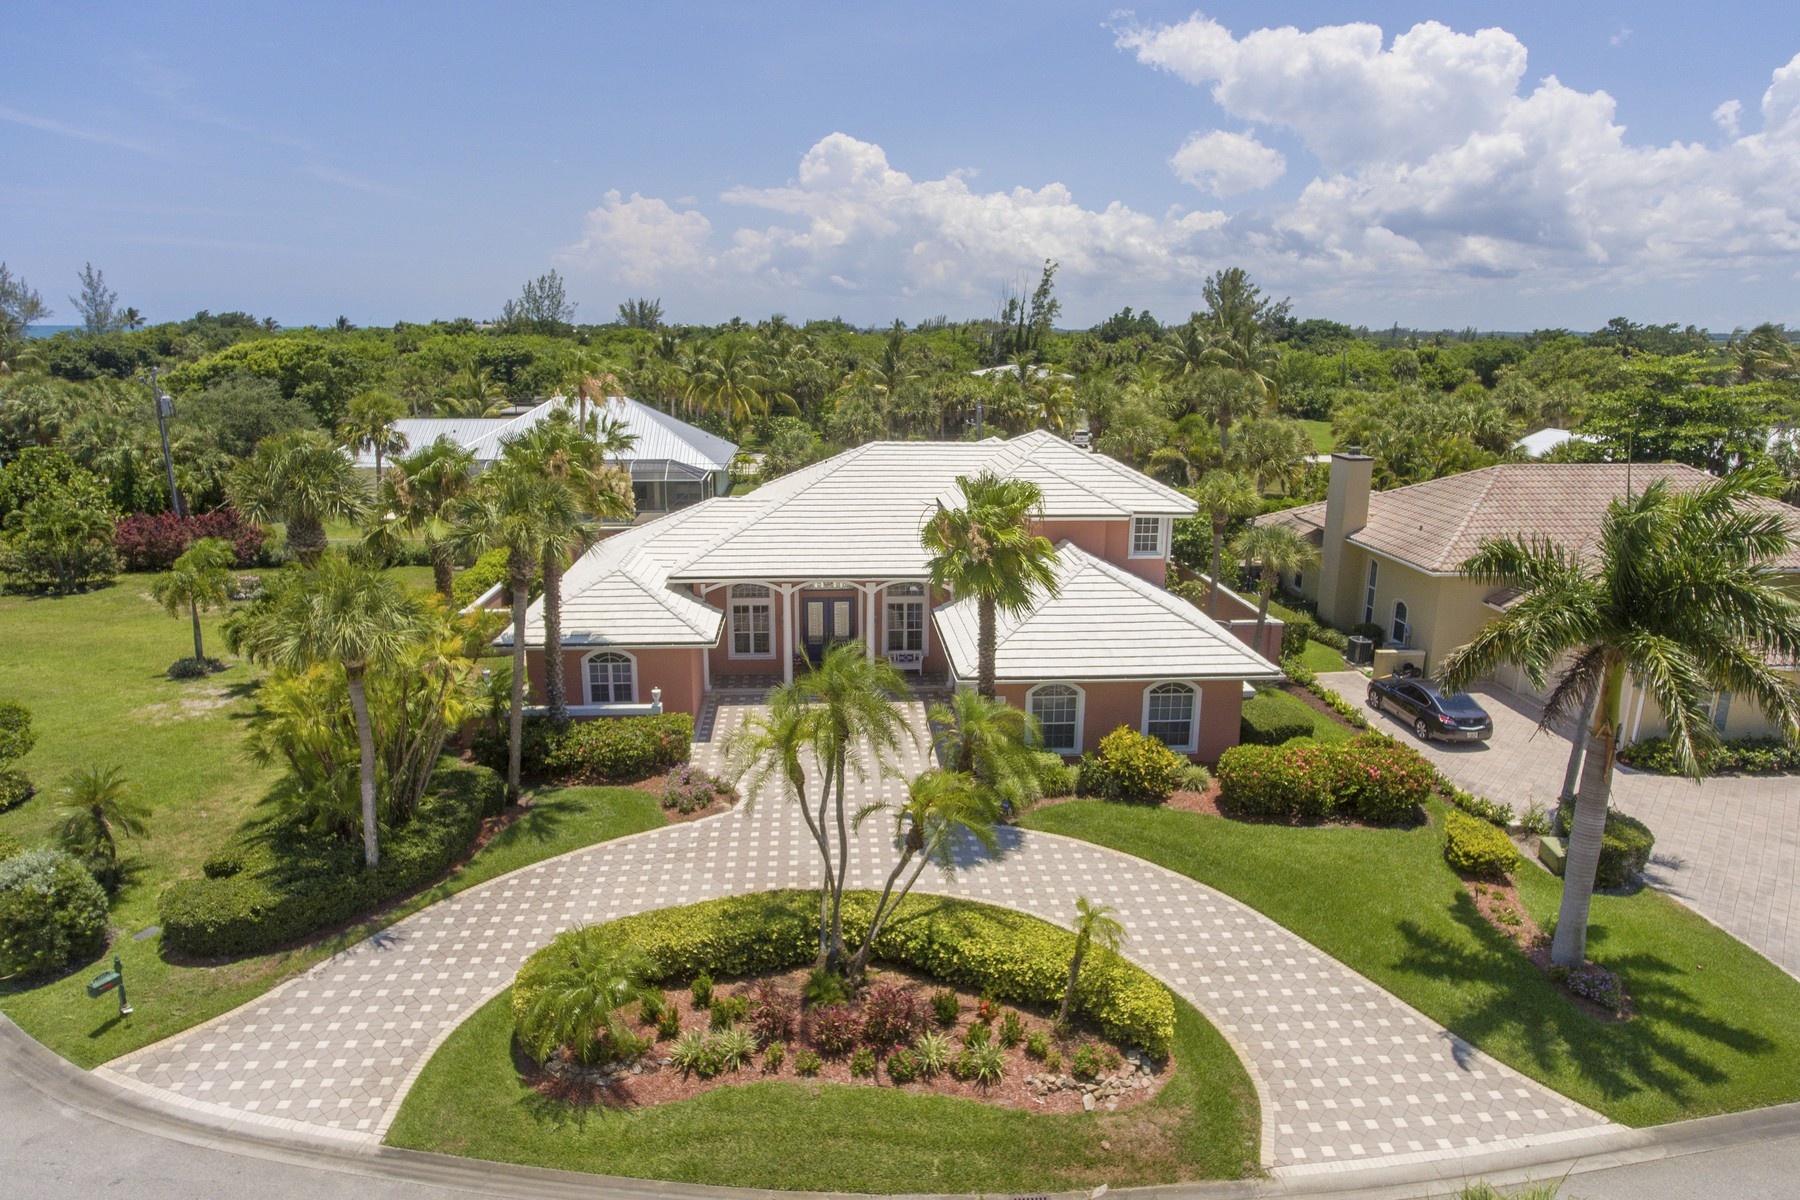 Single Family Homes のために 売買 アット Spacious Seaside Home 2245 Seaside Street Vero Beach, フロリダ 32963 アメリカ